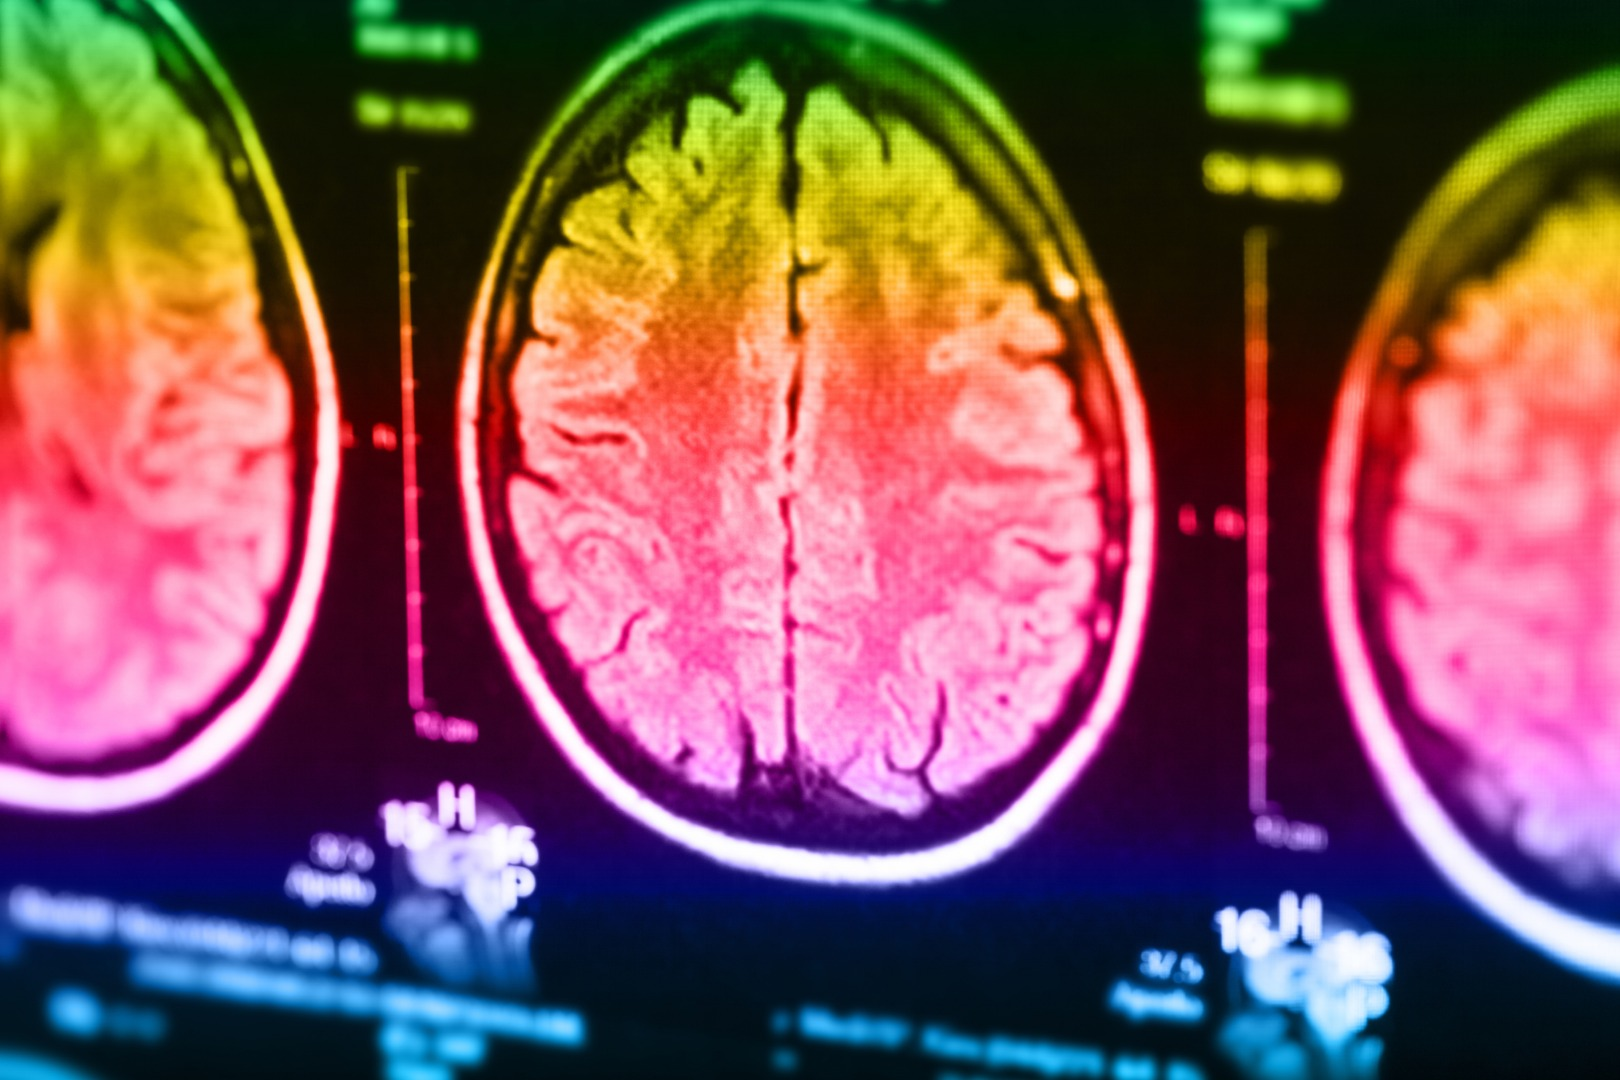 Marine Study Examines Stress Brain >> Inside The Head Of A Killer Imaging Study Uncovers Unique